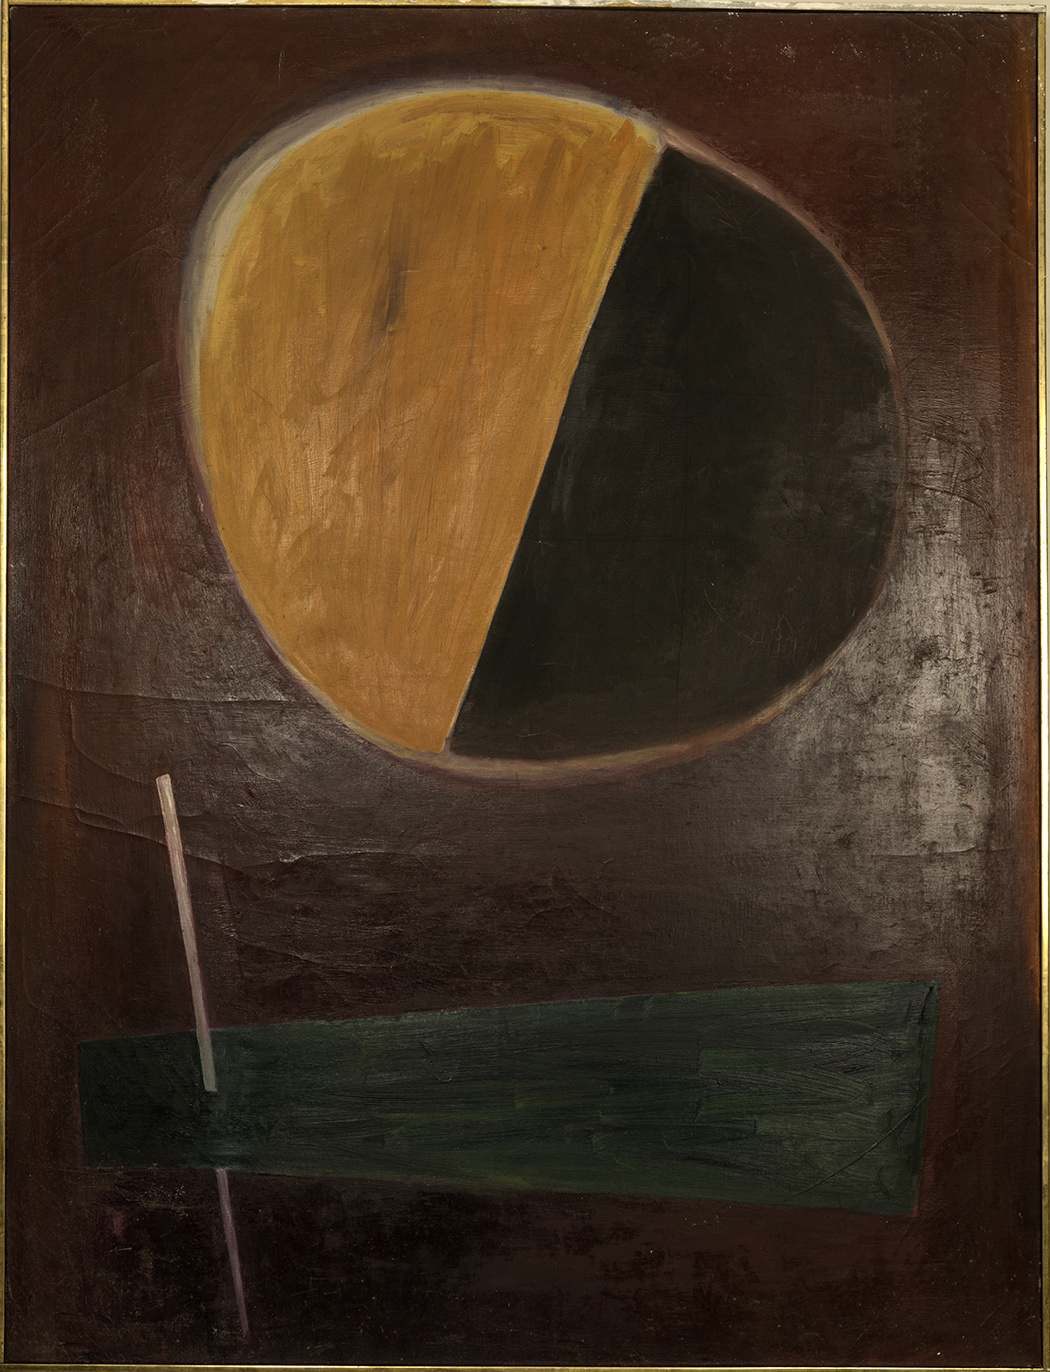 UNTITLED 1960  oil on canvas 60x78 inches